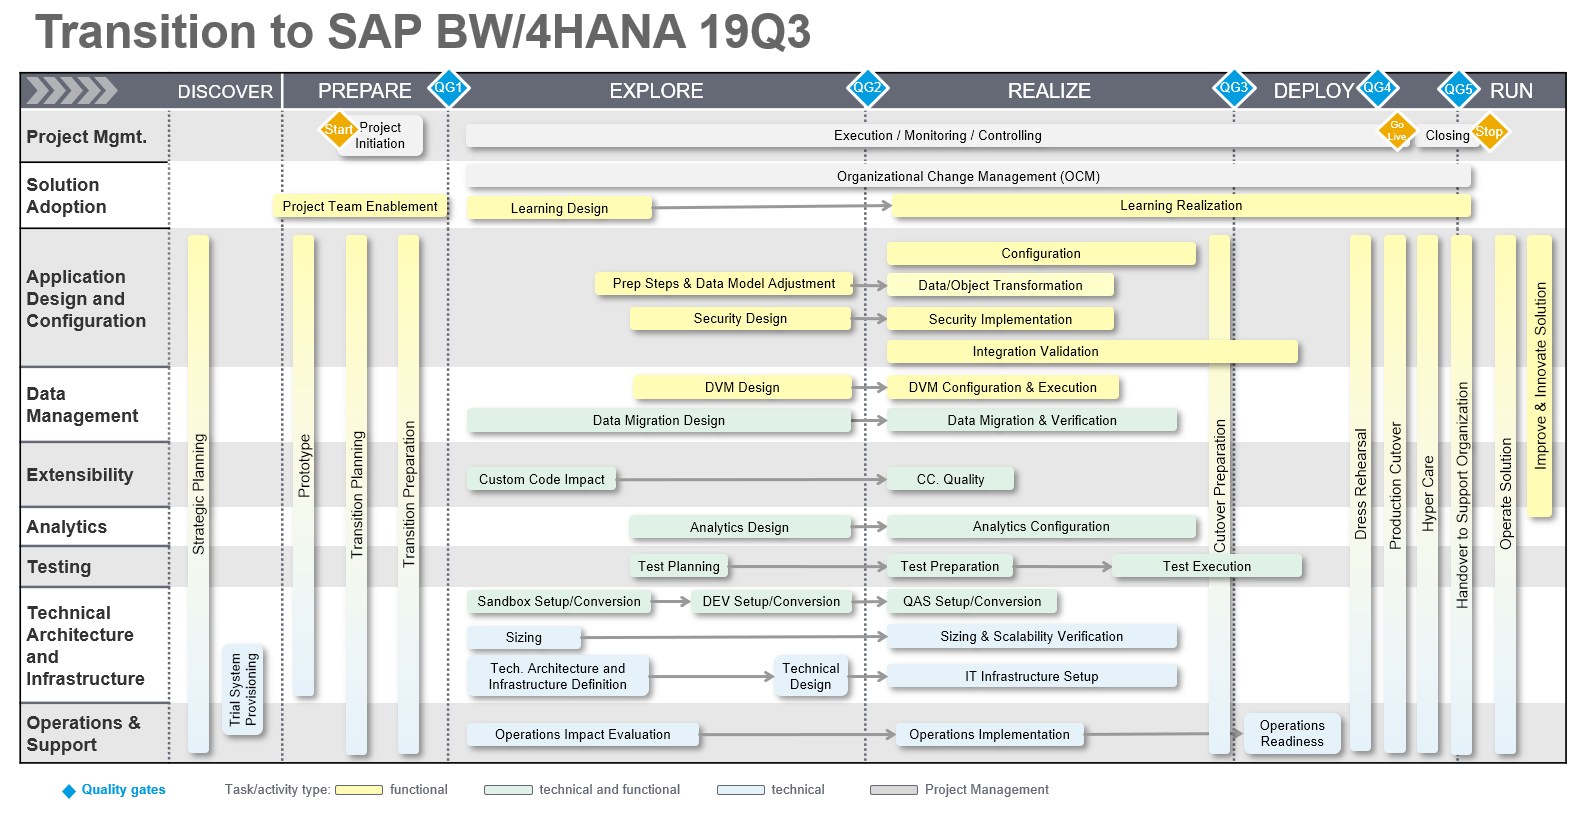 Transition to SAP BW/4HANA Road Map – Updated | SAP Blogs